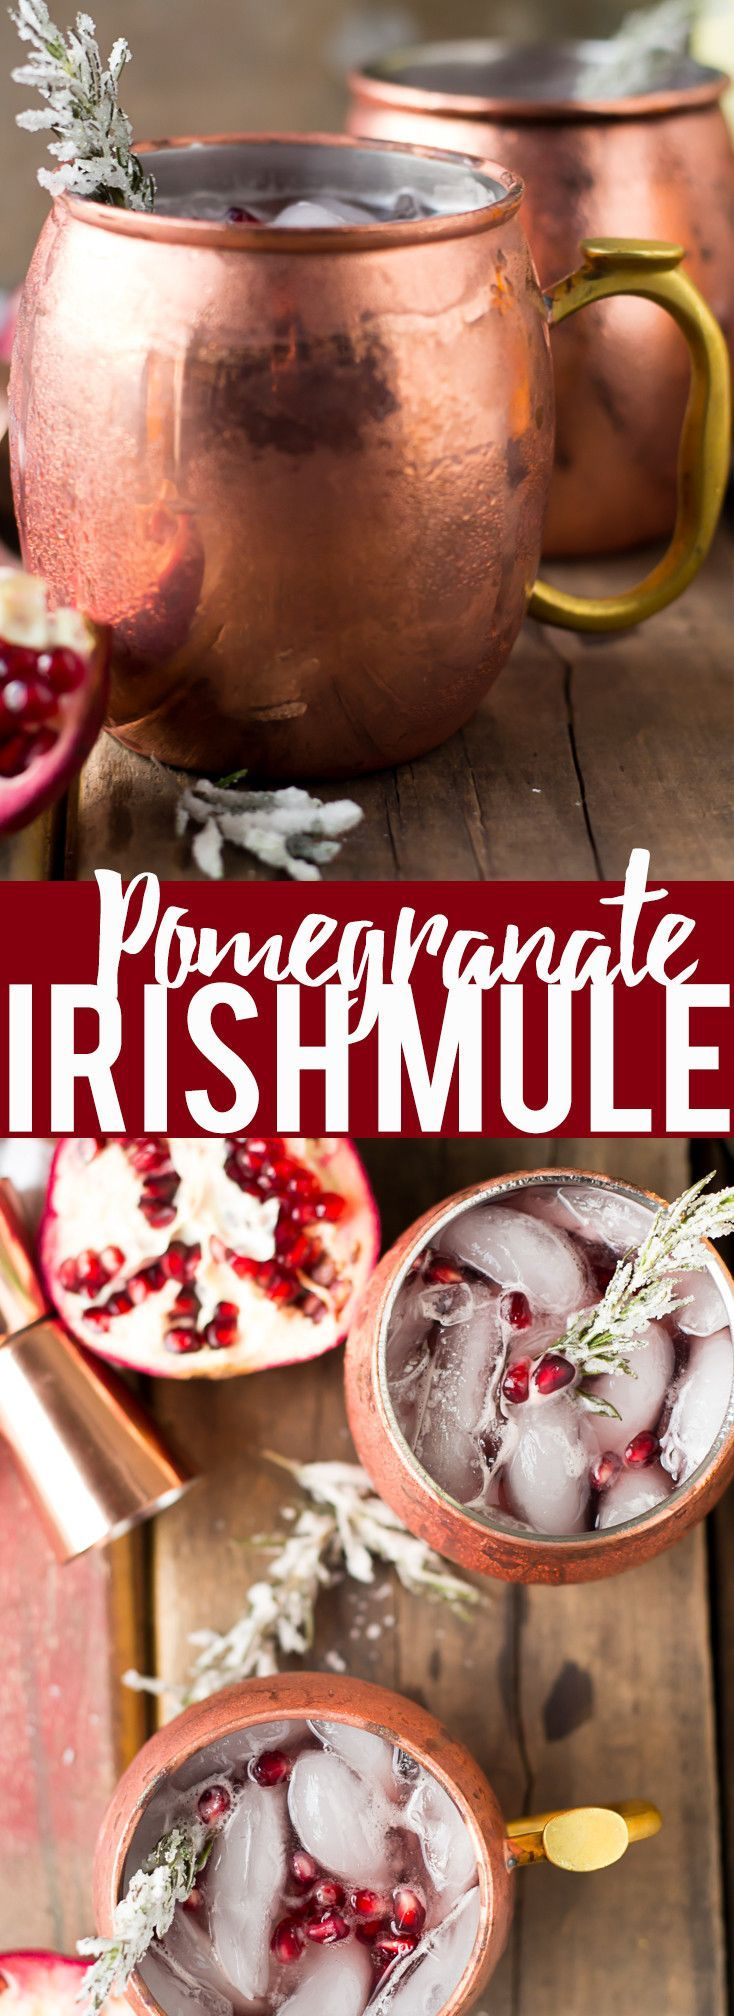 Pomegranate Irish Mule | Pomegranate Recipes | Winter Cocktail | Whiskey Cocktail | Christmas Cocktail | Holiday pomegranate drink | Pomegranate moscow mule | Easy Cocktail | Thanksgiving drink